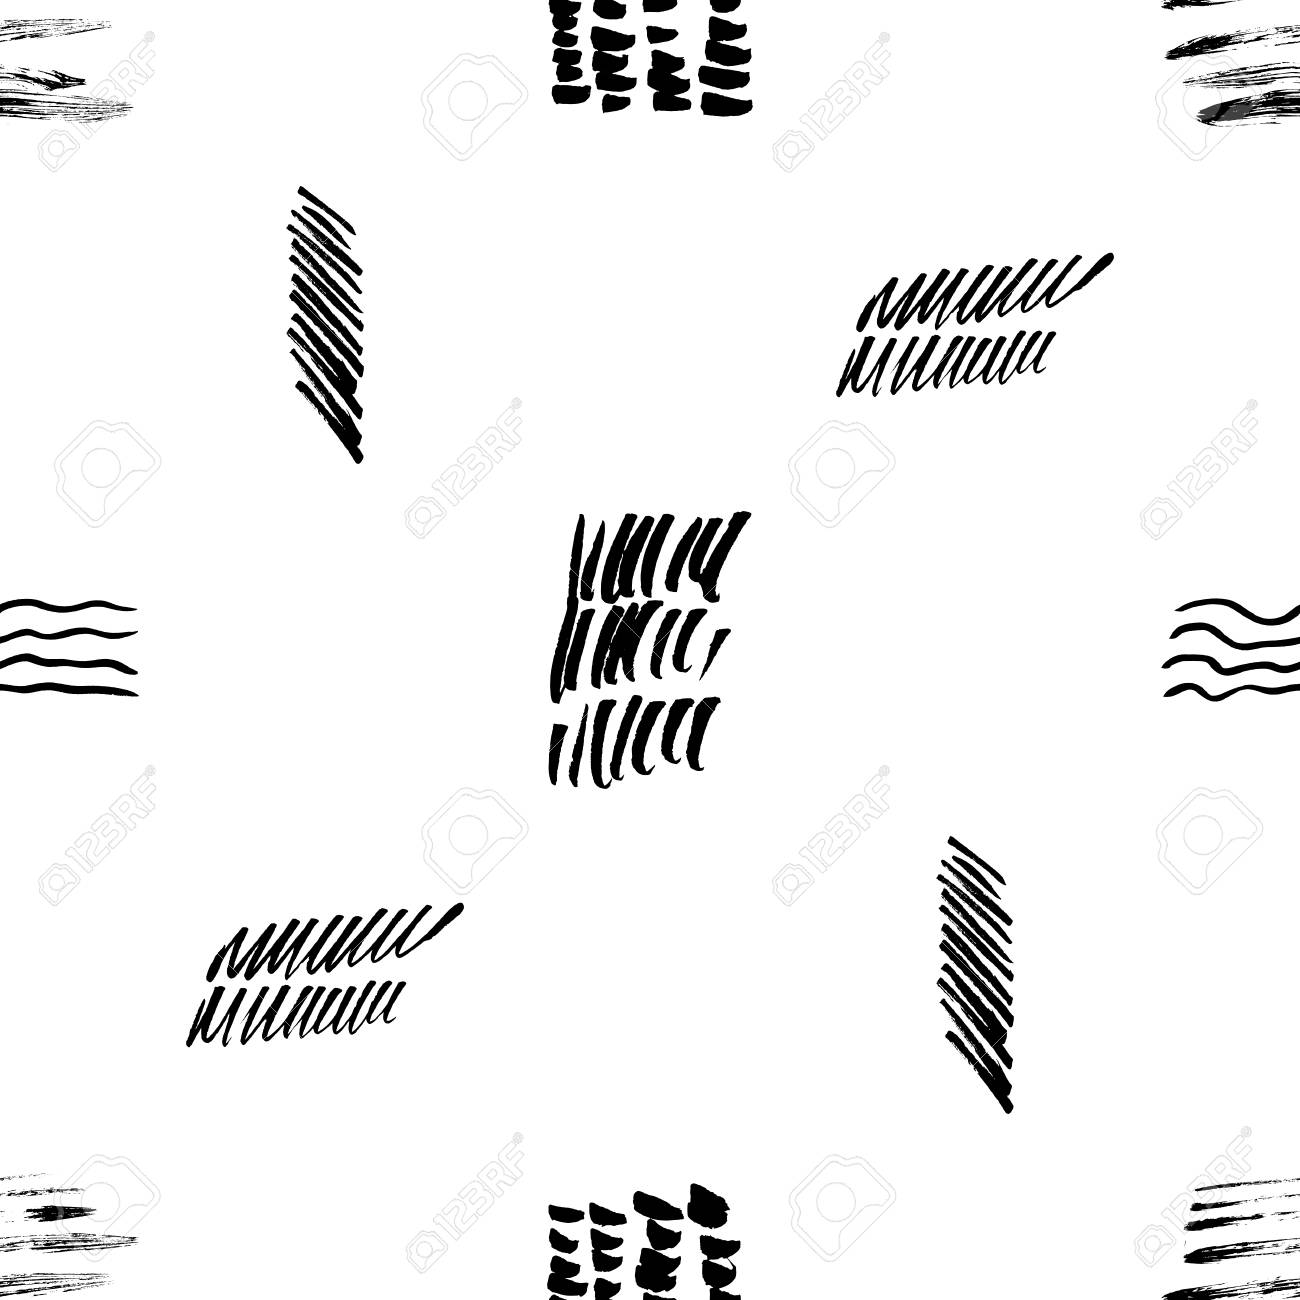 Seamless Pattern Hand Drawn With A Brush Strokes Abstract Black And White Paint Brushstrokes Vector Illustration Grunge Monochrome Background Good